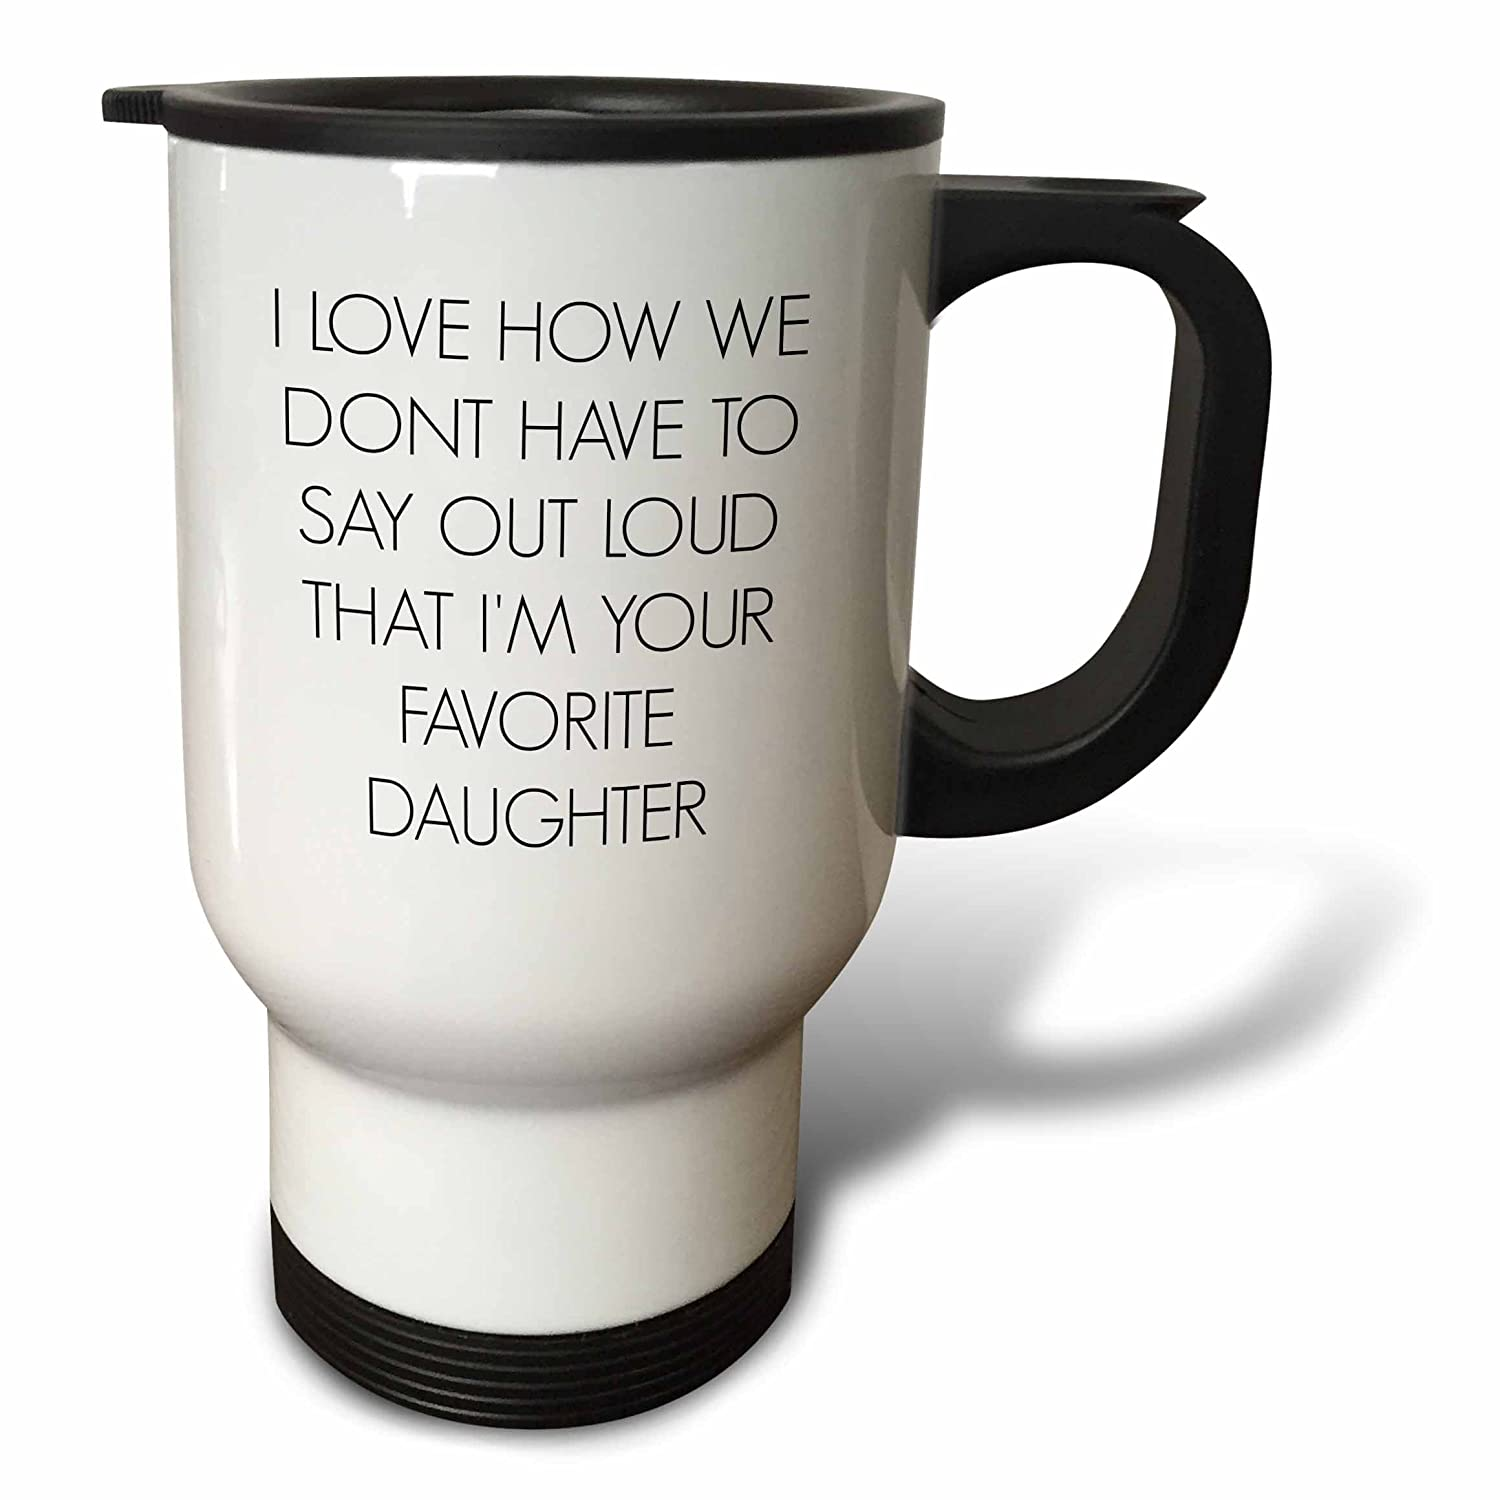 3dRose tm/_212164/_1 I love how we dont have to say out loud Im your favorite daughter-Travel Mug White 14 oz Stainless Steel